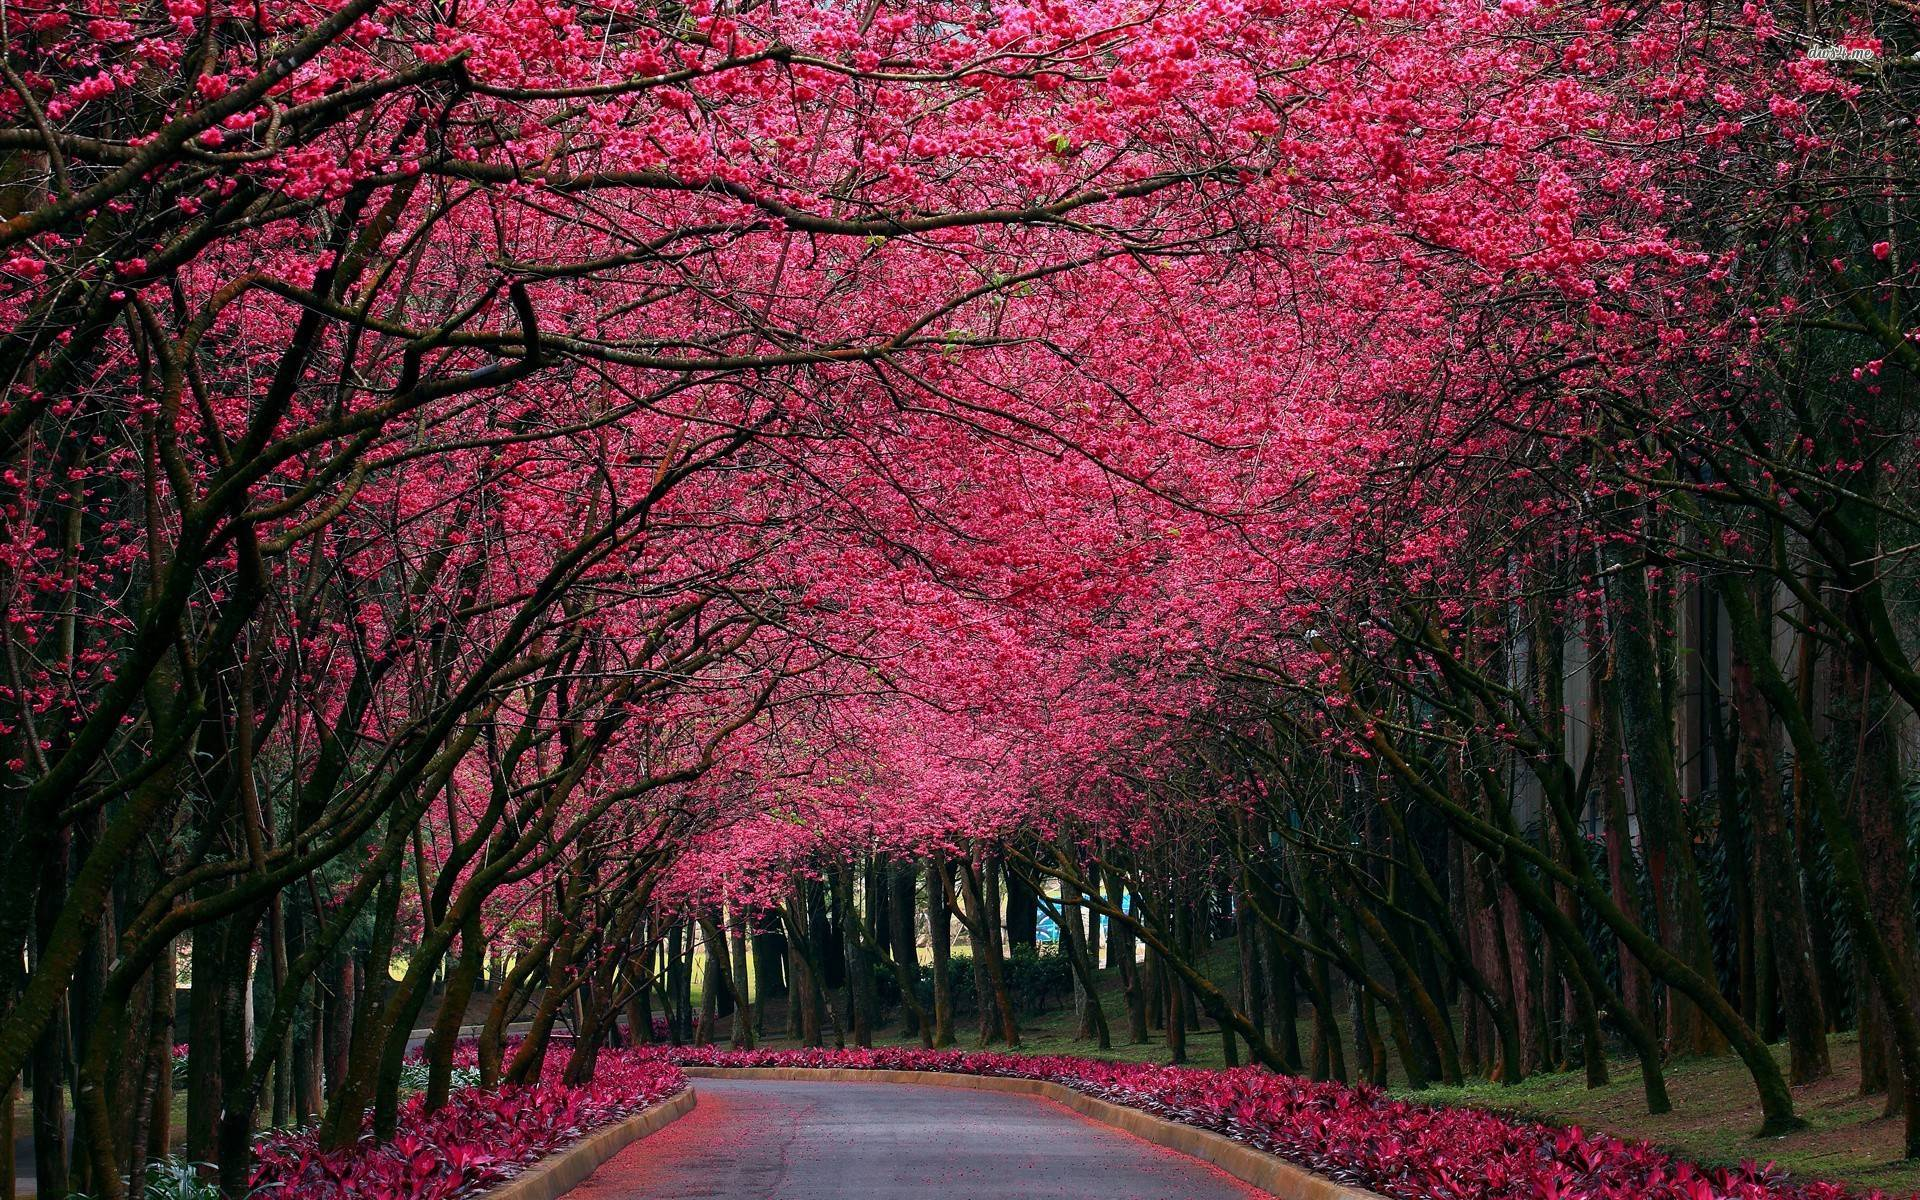 Cuadros Plateados Pink Tree Wallpapers - Wallpaper Cave